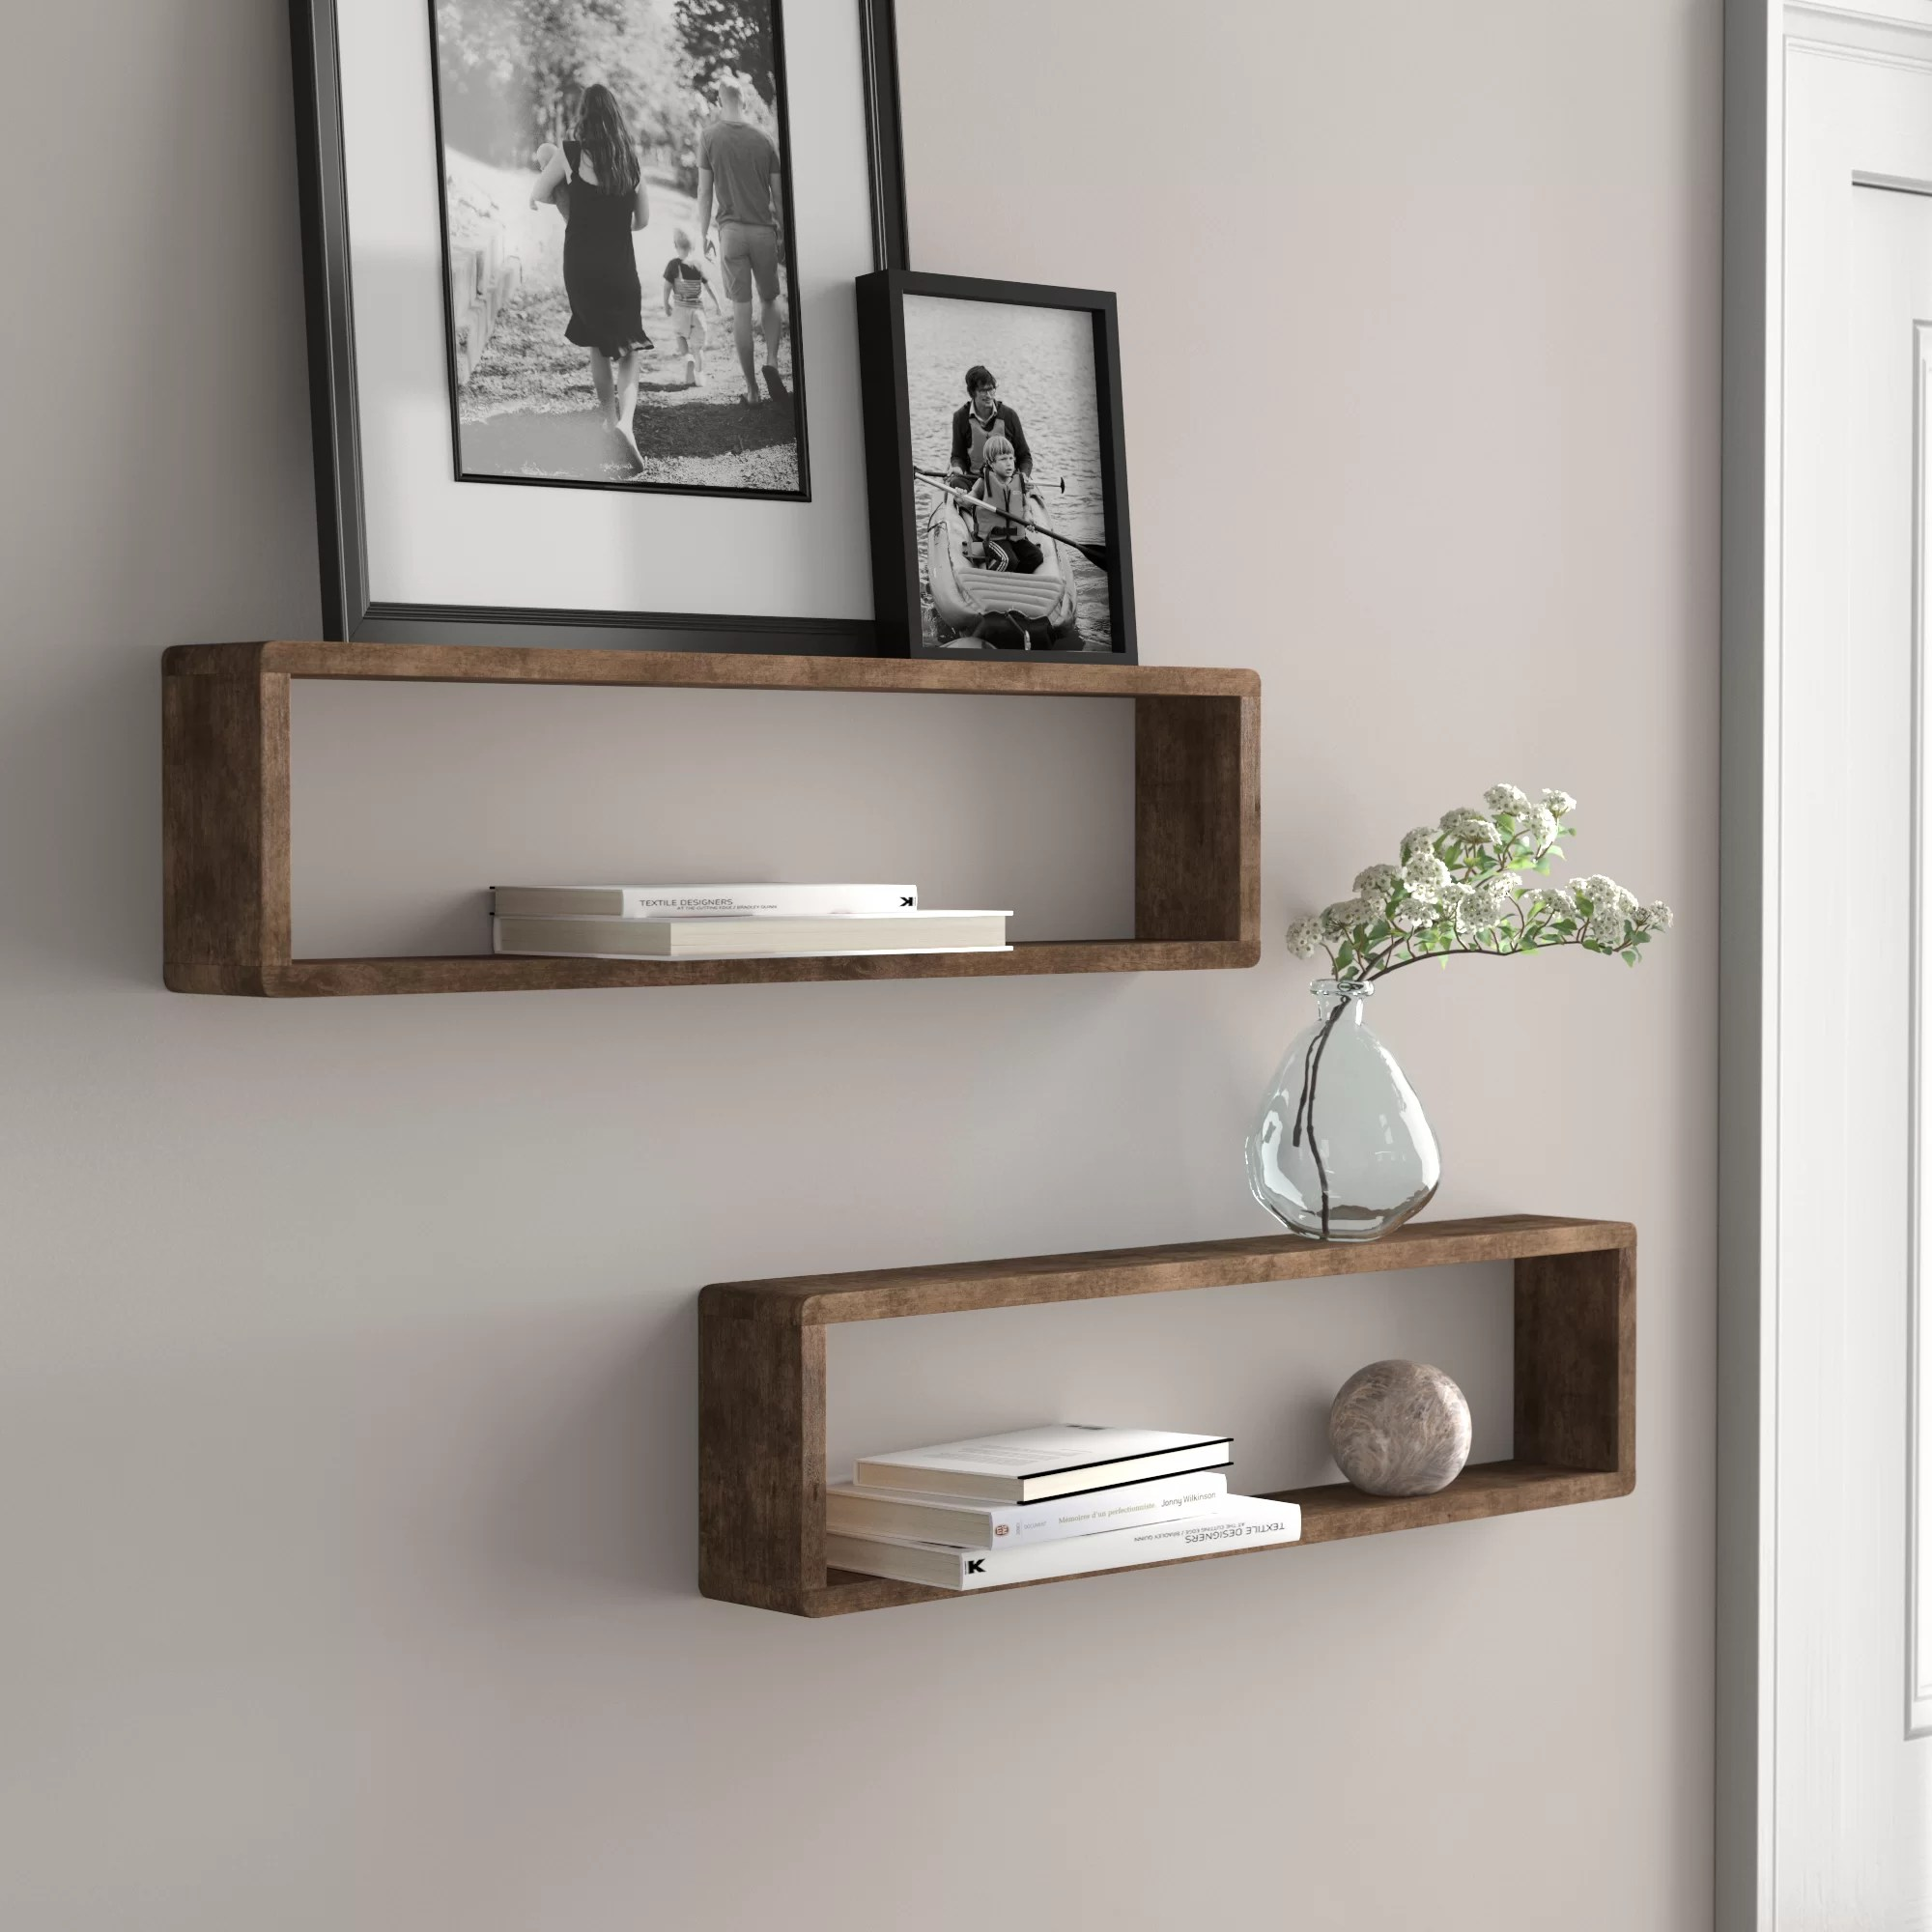 Wayfair Bedroom Wall Display Shelves You Ll Love In 2021